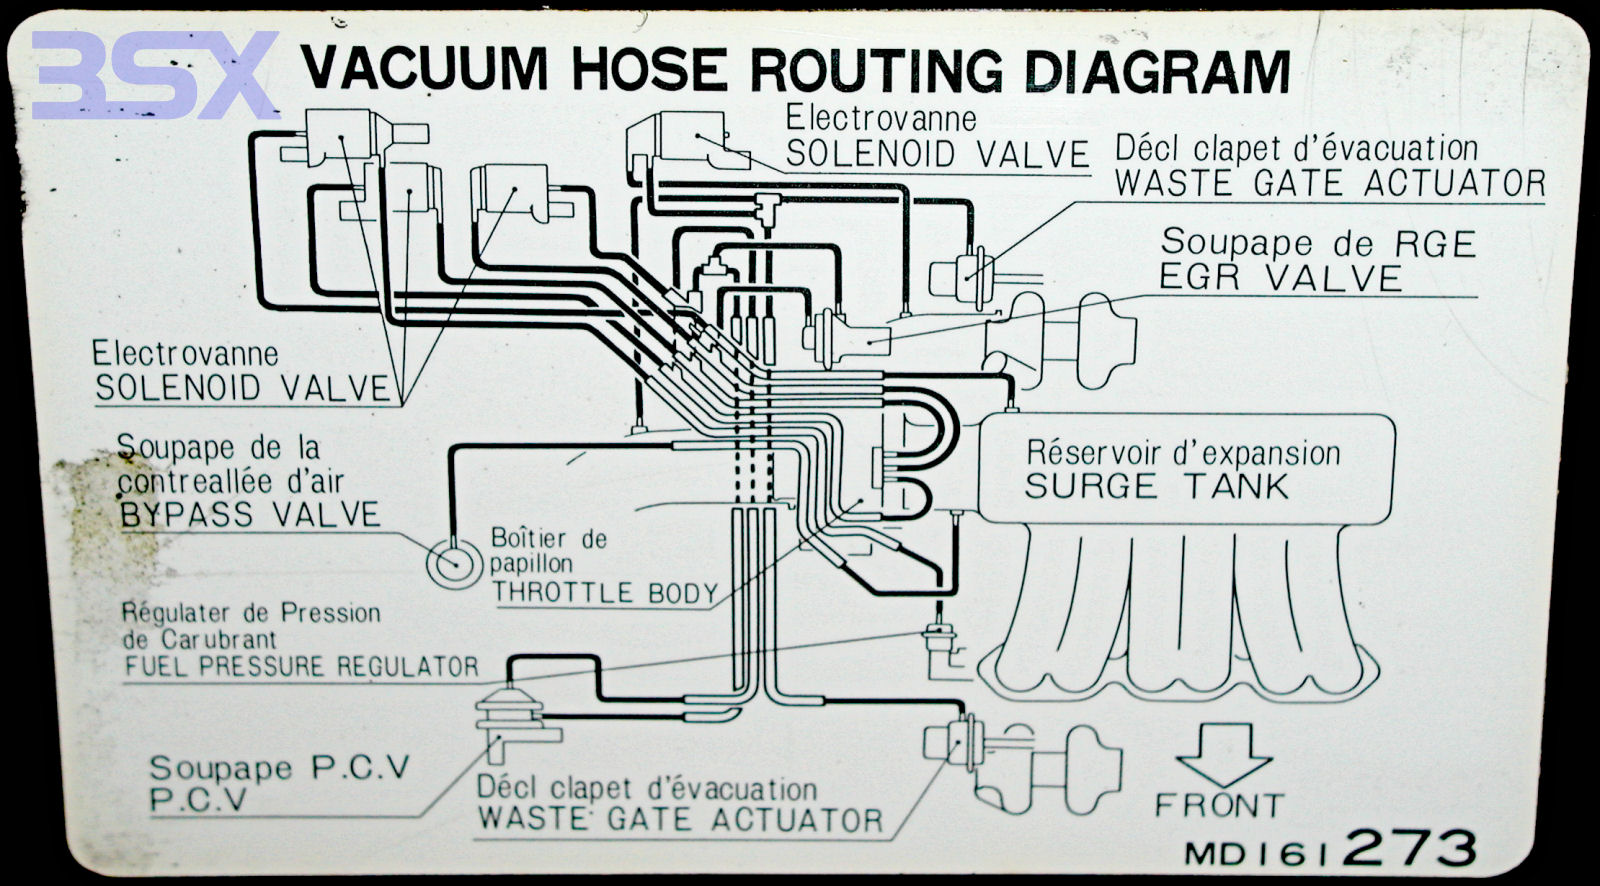 1983 nissan 280zx turbo wiring diagram html with 1990 Acura Integra Hose Diagram on Tattooos as well  moreover Top 10 Female Cartoon Characters That I Would Bang By Mgg likewise Wiring Harness For 72 Datsun 510 moreover 1990 Acura Integra Hose Diagram.